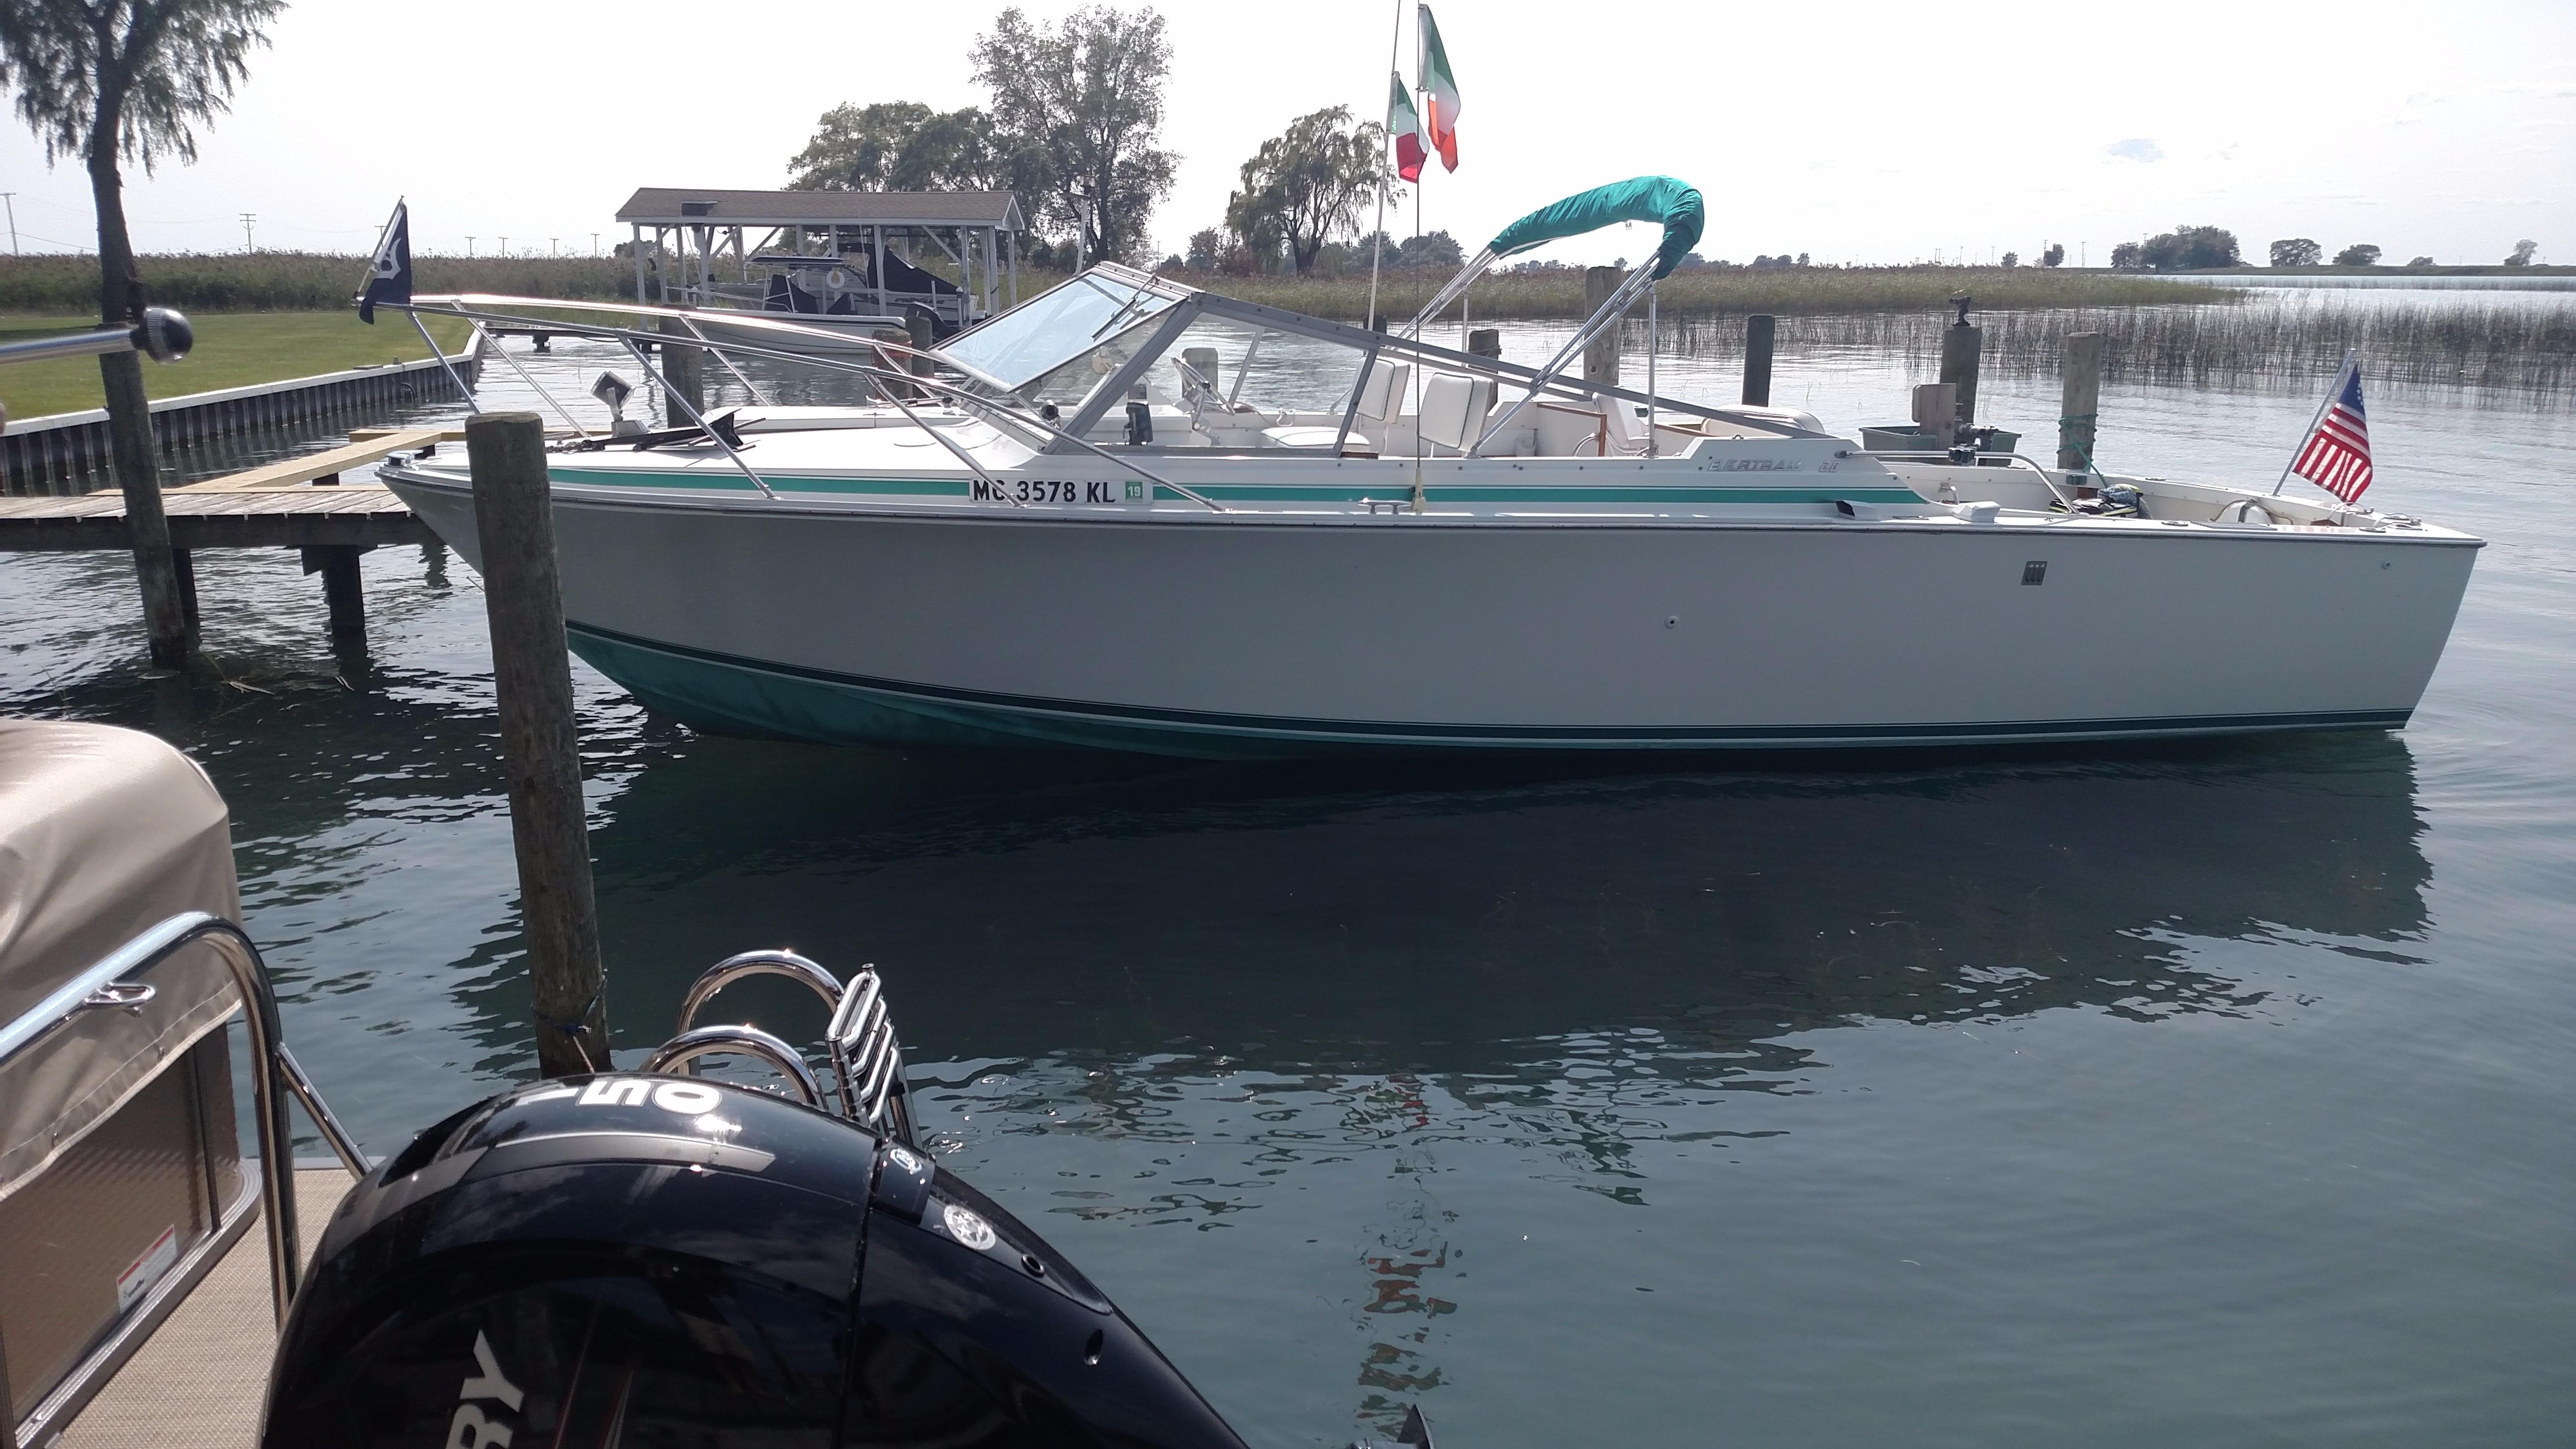 Bertram moppie | New and Used Boats for Sale